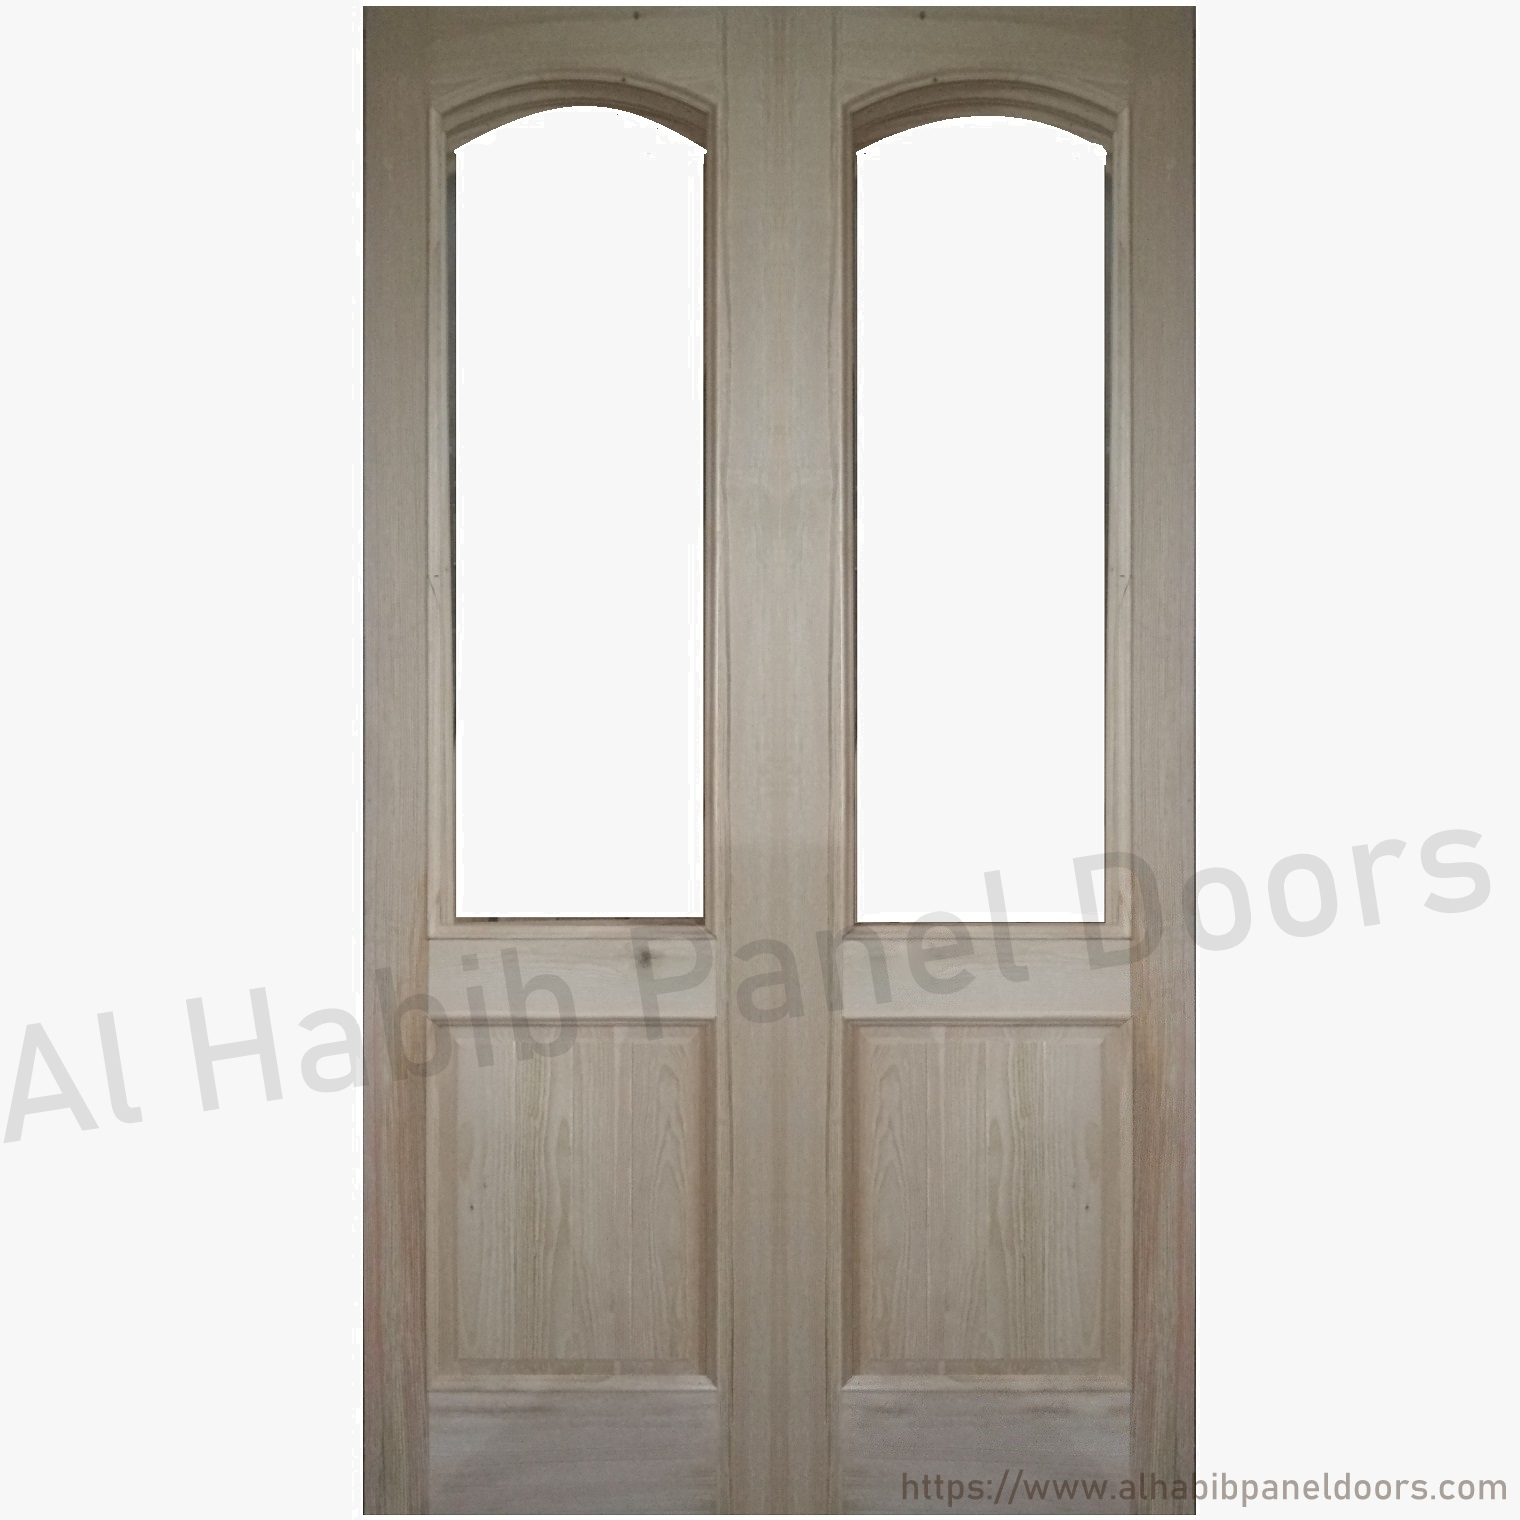 Surprising Glass Wooden Door With Frame Hpd480 Glass Panel Doors Al Habib Inspirational Interior Design Netriciaus